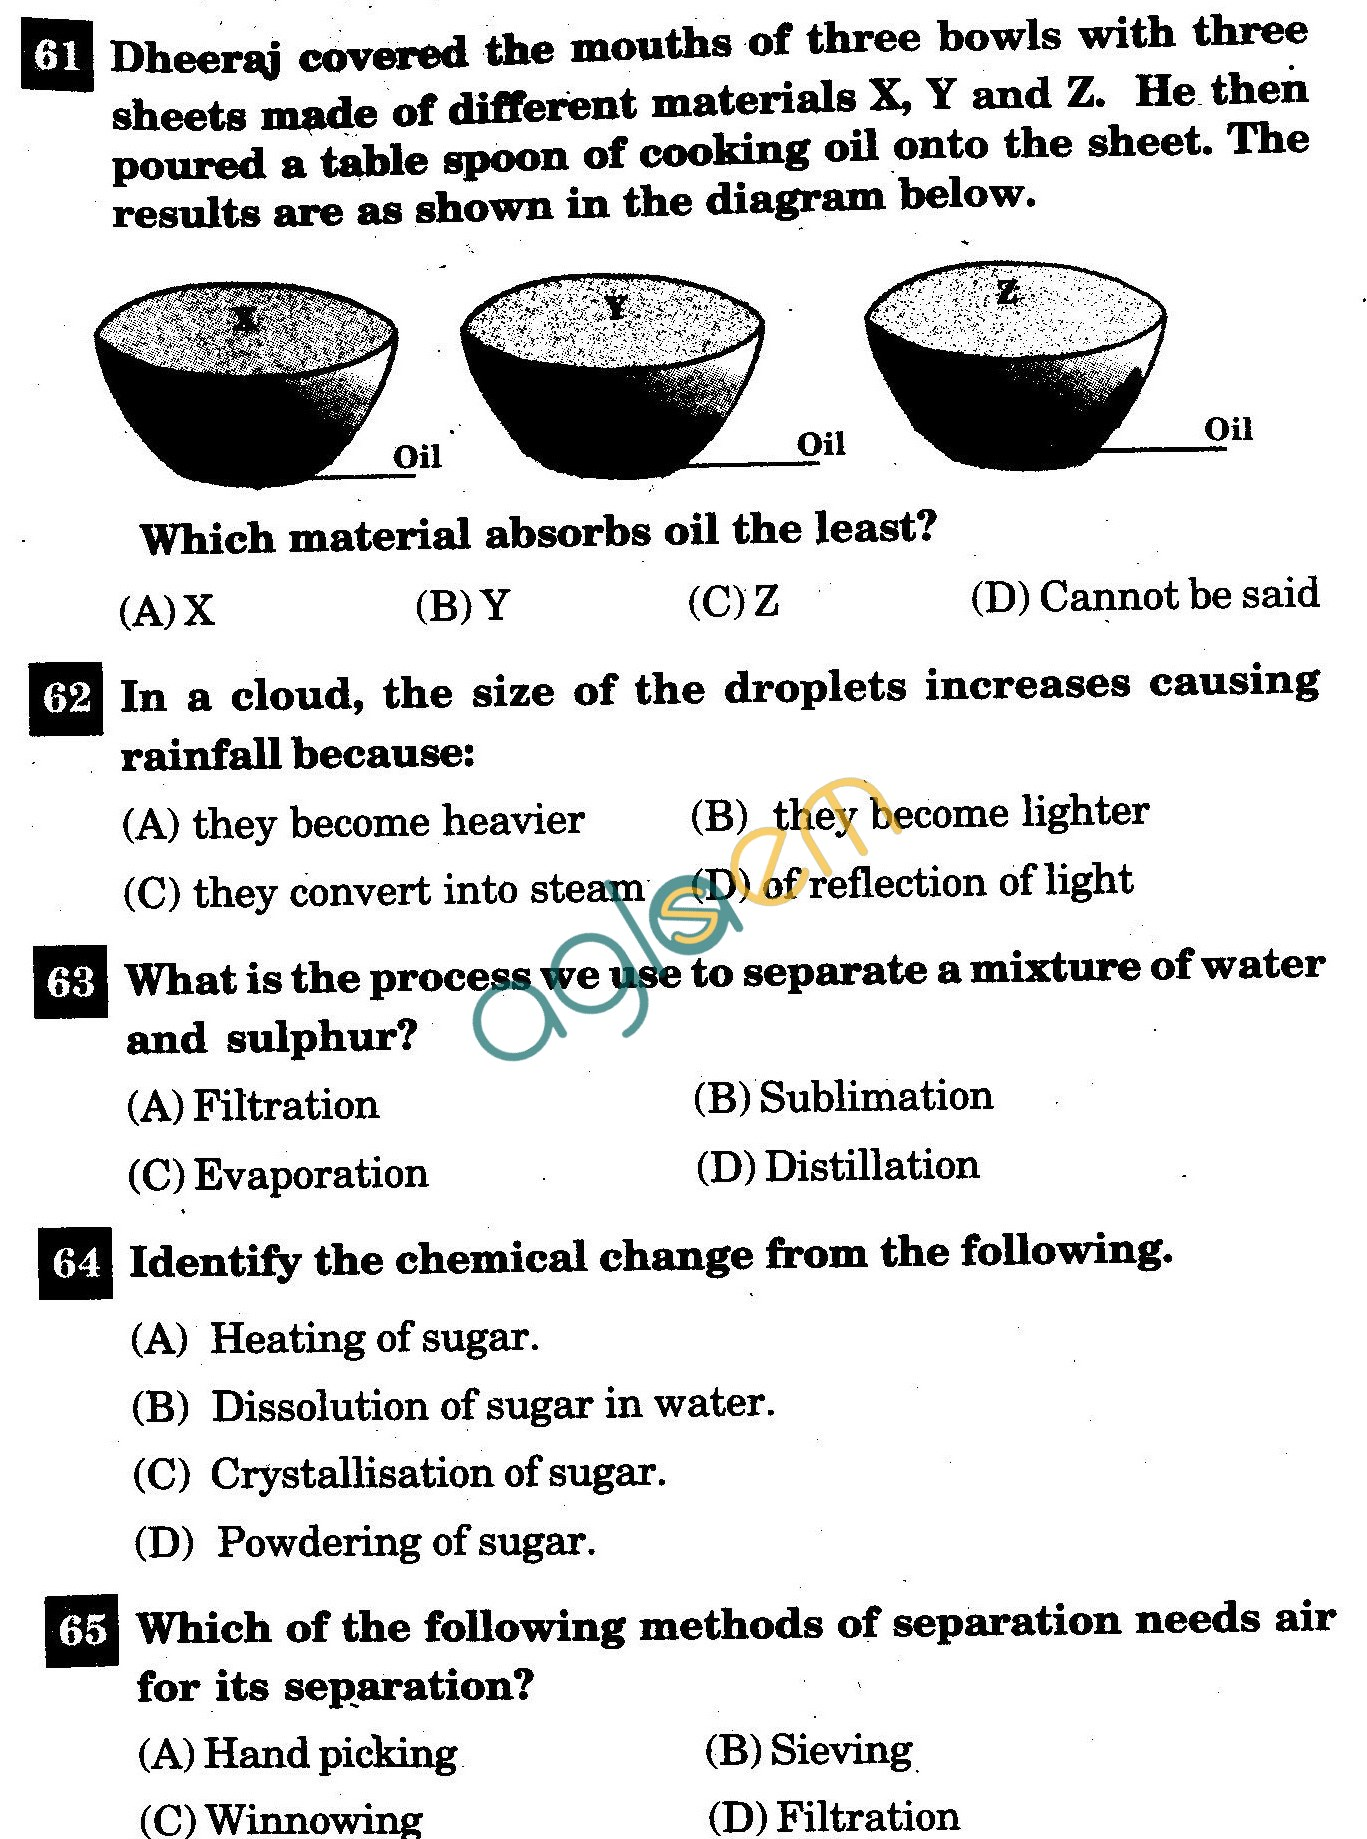 NSTSE 2011: Class VI Question Paper with Answers - Chemistry